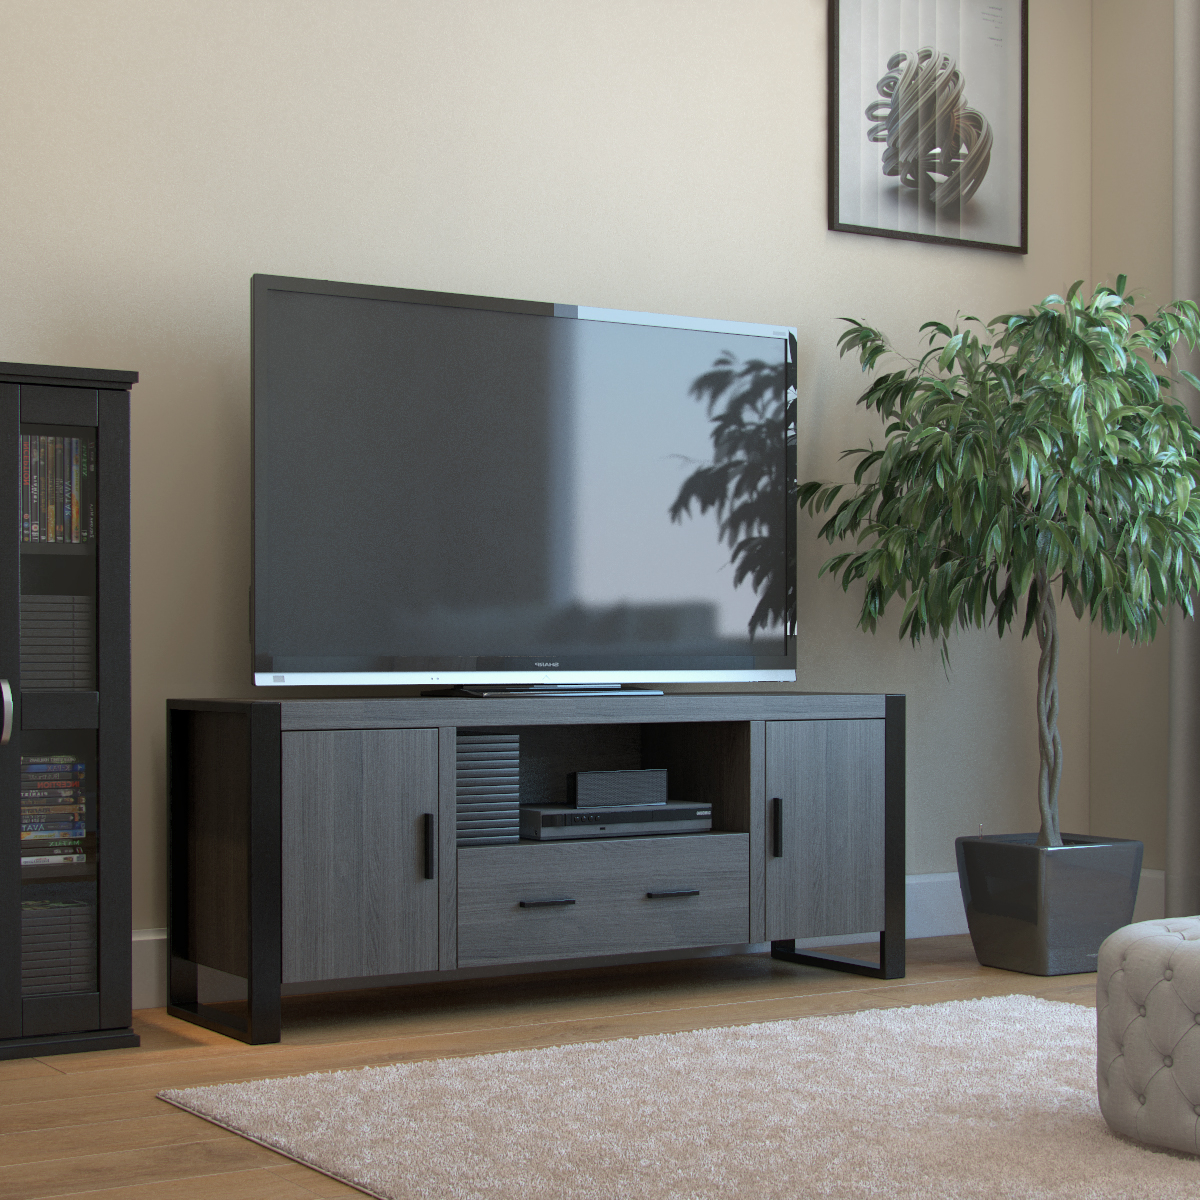 Widely Used Delphi Grey Tv Stands With Ryan Rove Wendell 60 Inch Tv Stand In Ash Grey And Black (View 2 of 25)